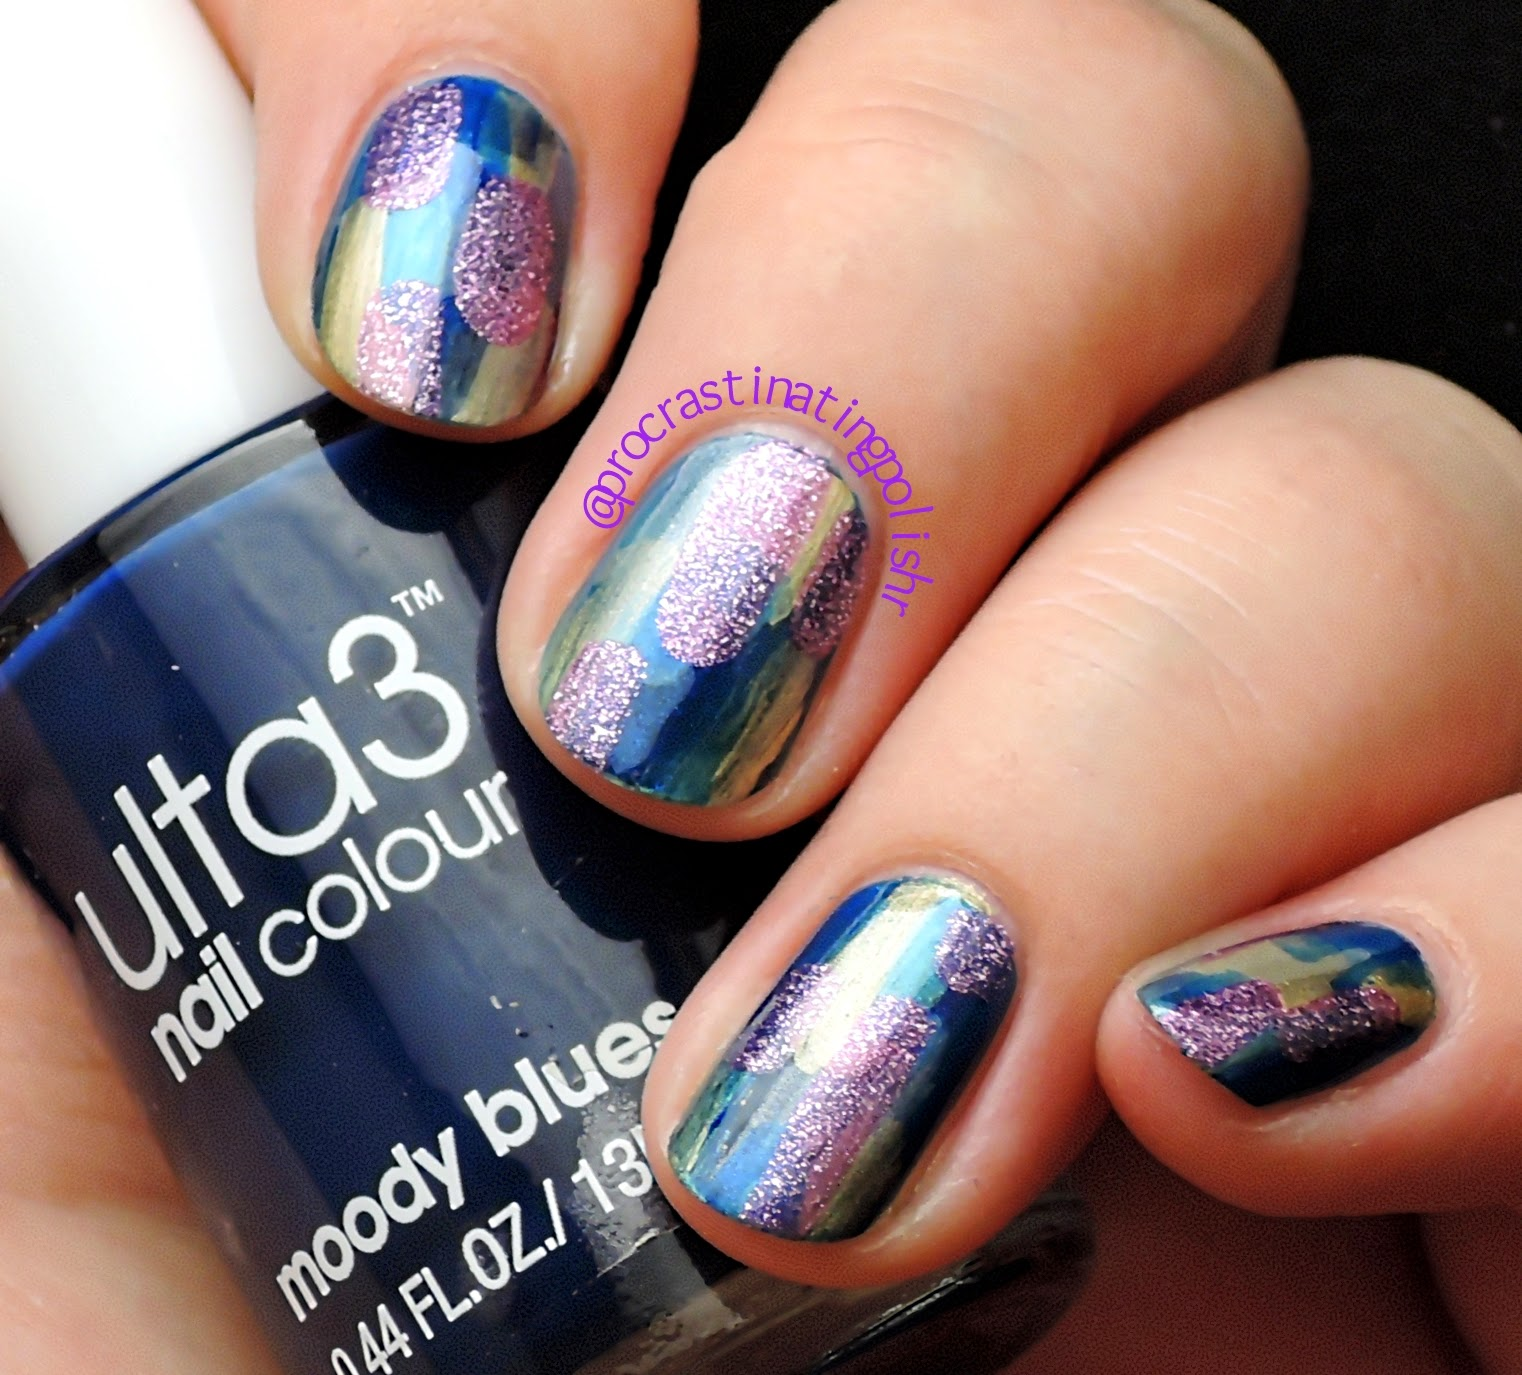 Brush stroke nail art with Ulta3